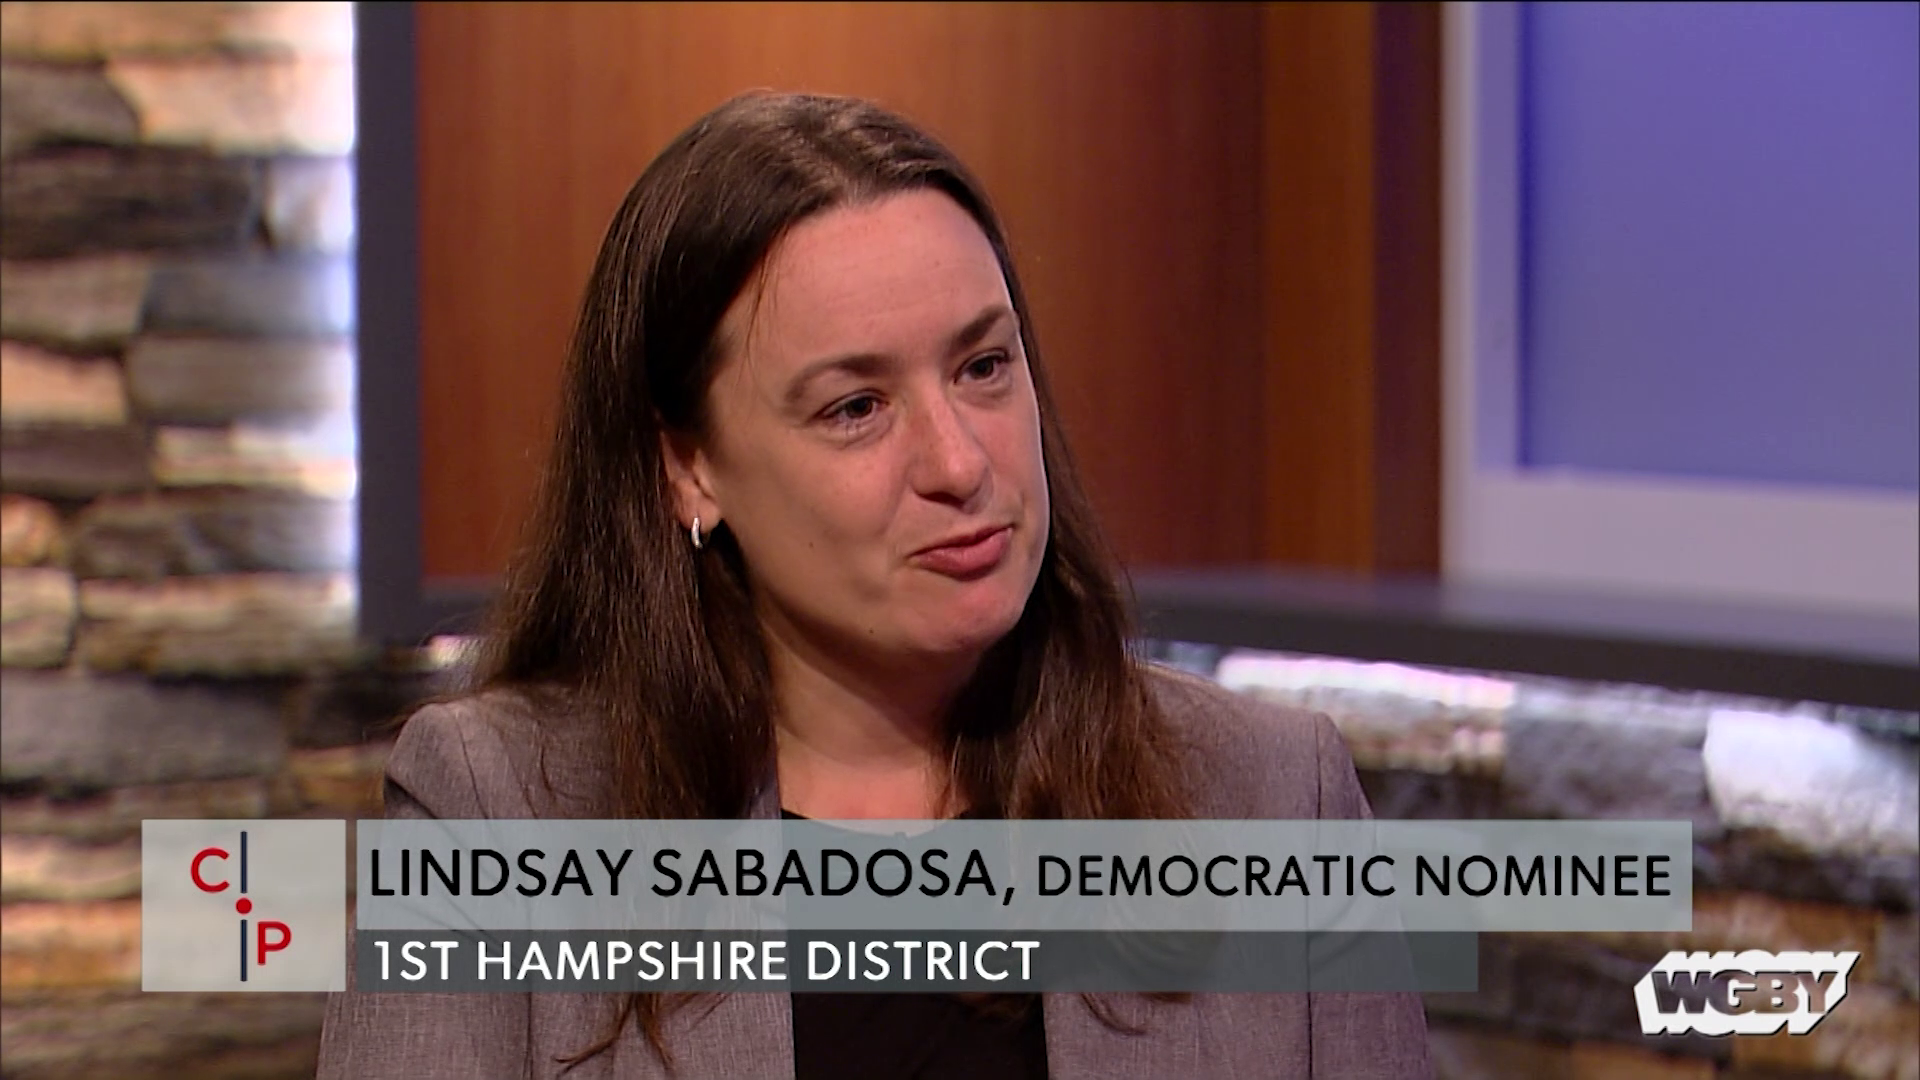 Activist and advocate Lindsay Sabadosa beat out late Rep. Peter Kocot's aide Diana Syznalin the 1st Hampshire District Democratic Primary.